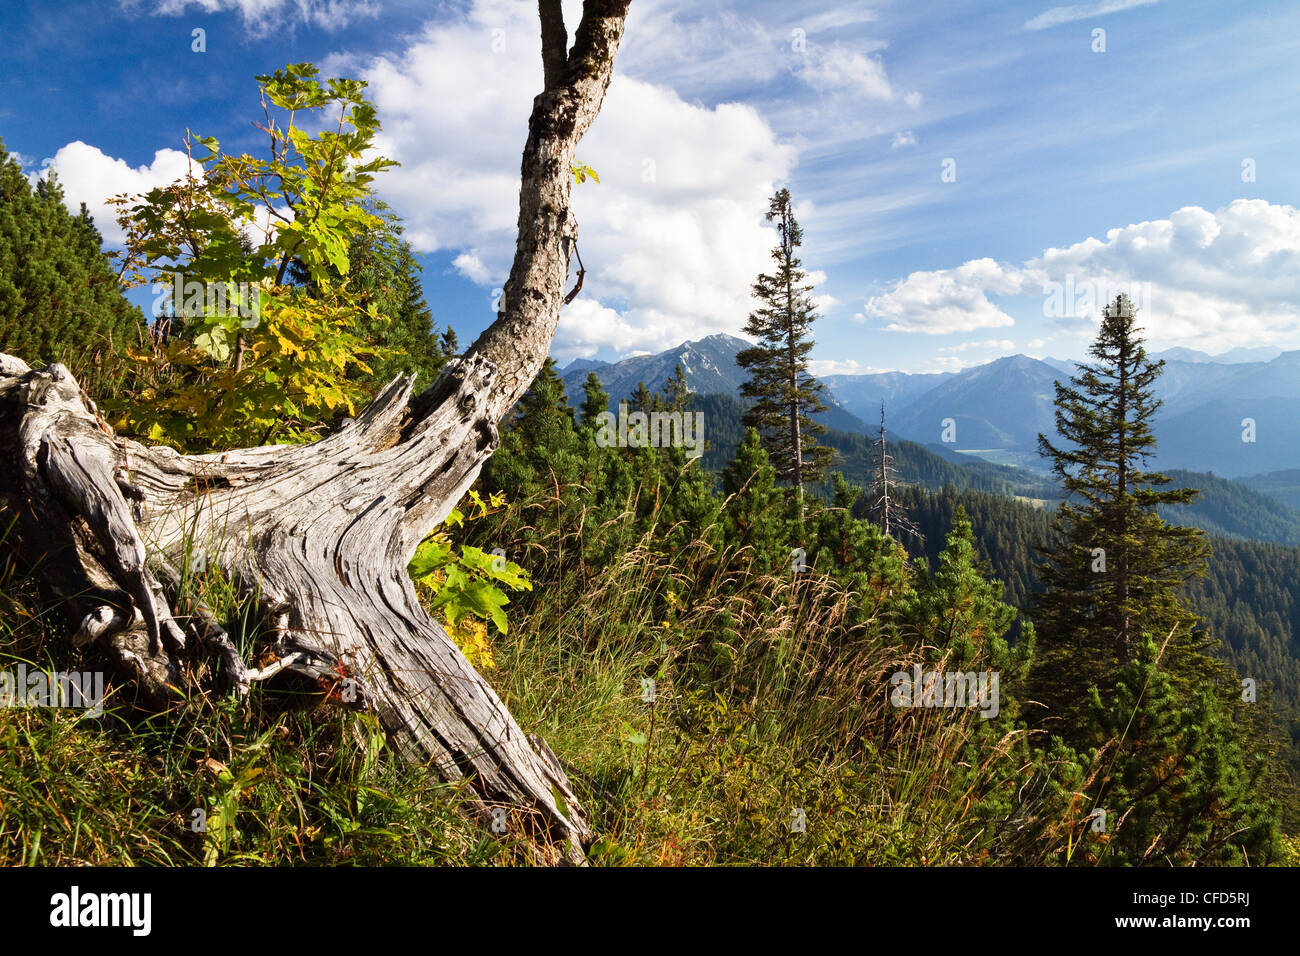 Weathered sycamore maple tree in Blauberge mountains, view onto Achental Valley, Alps, Austria, Europe Stock Photo